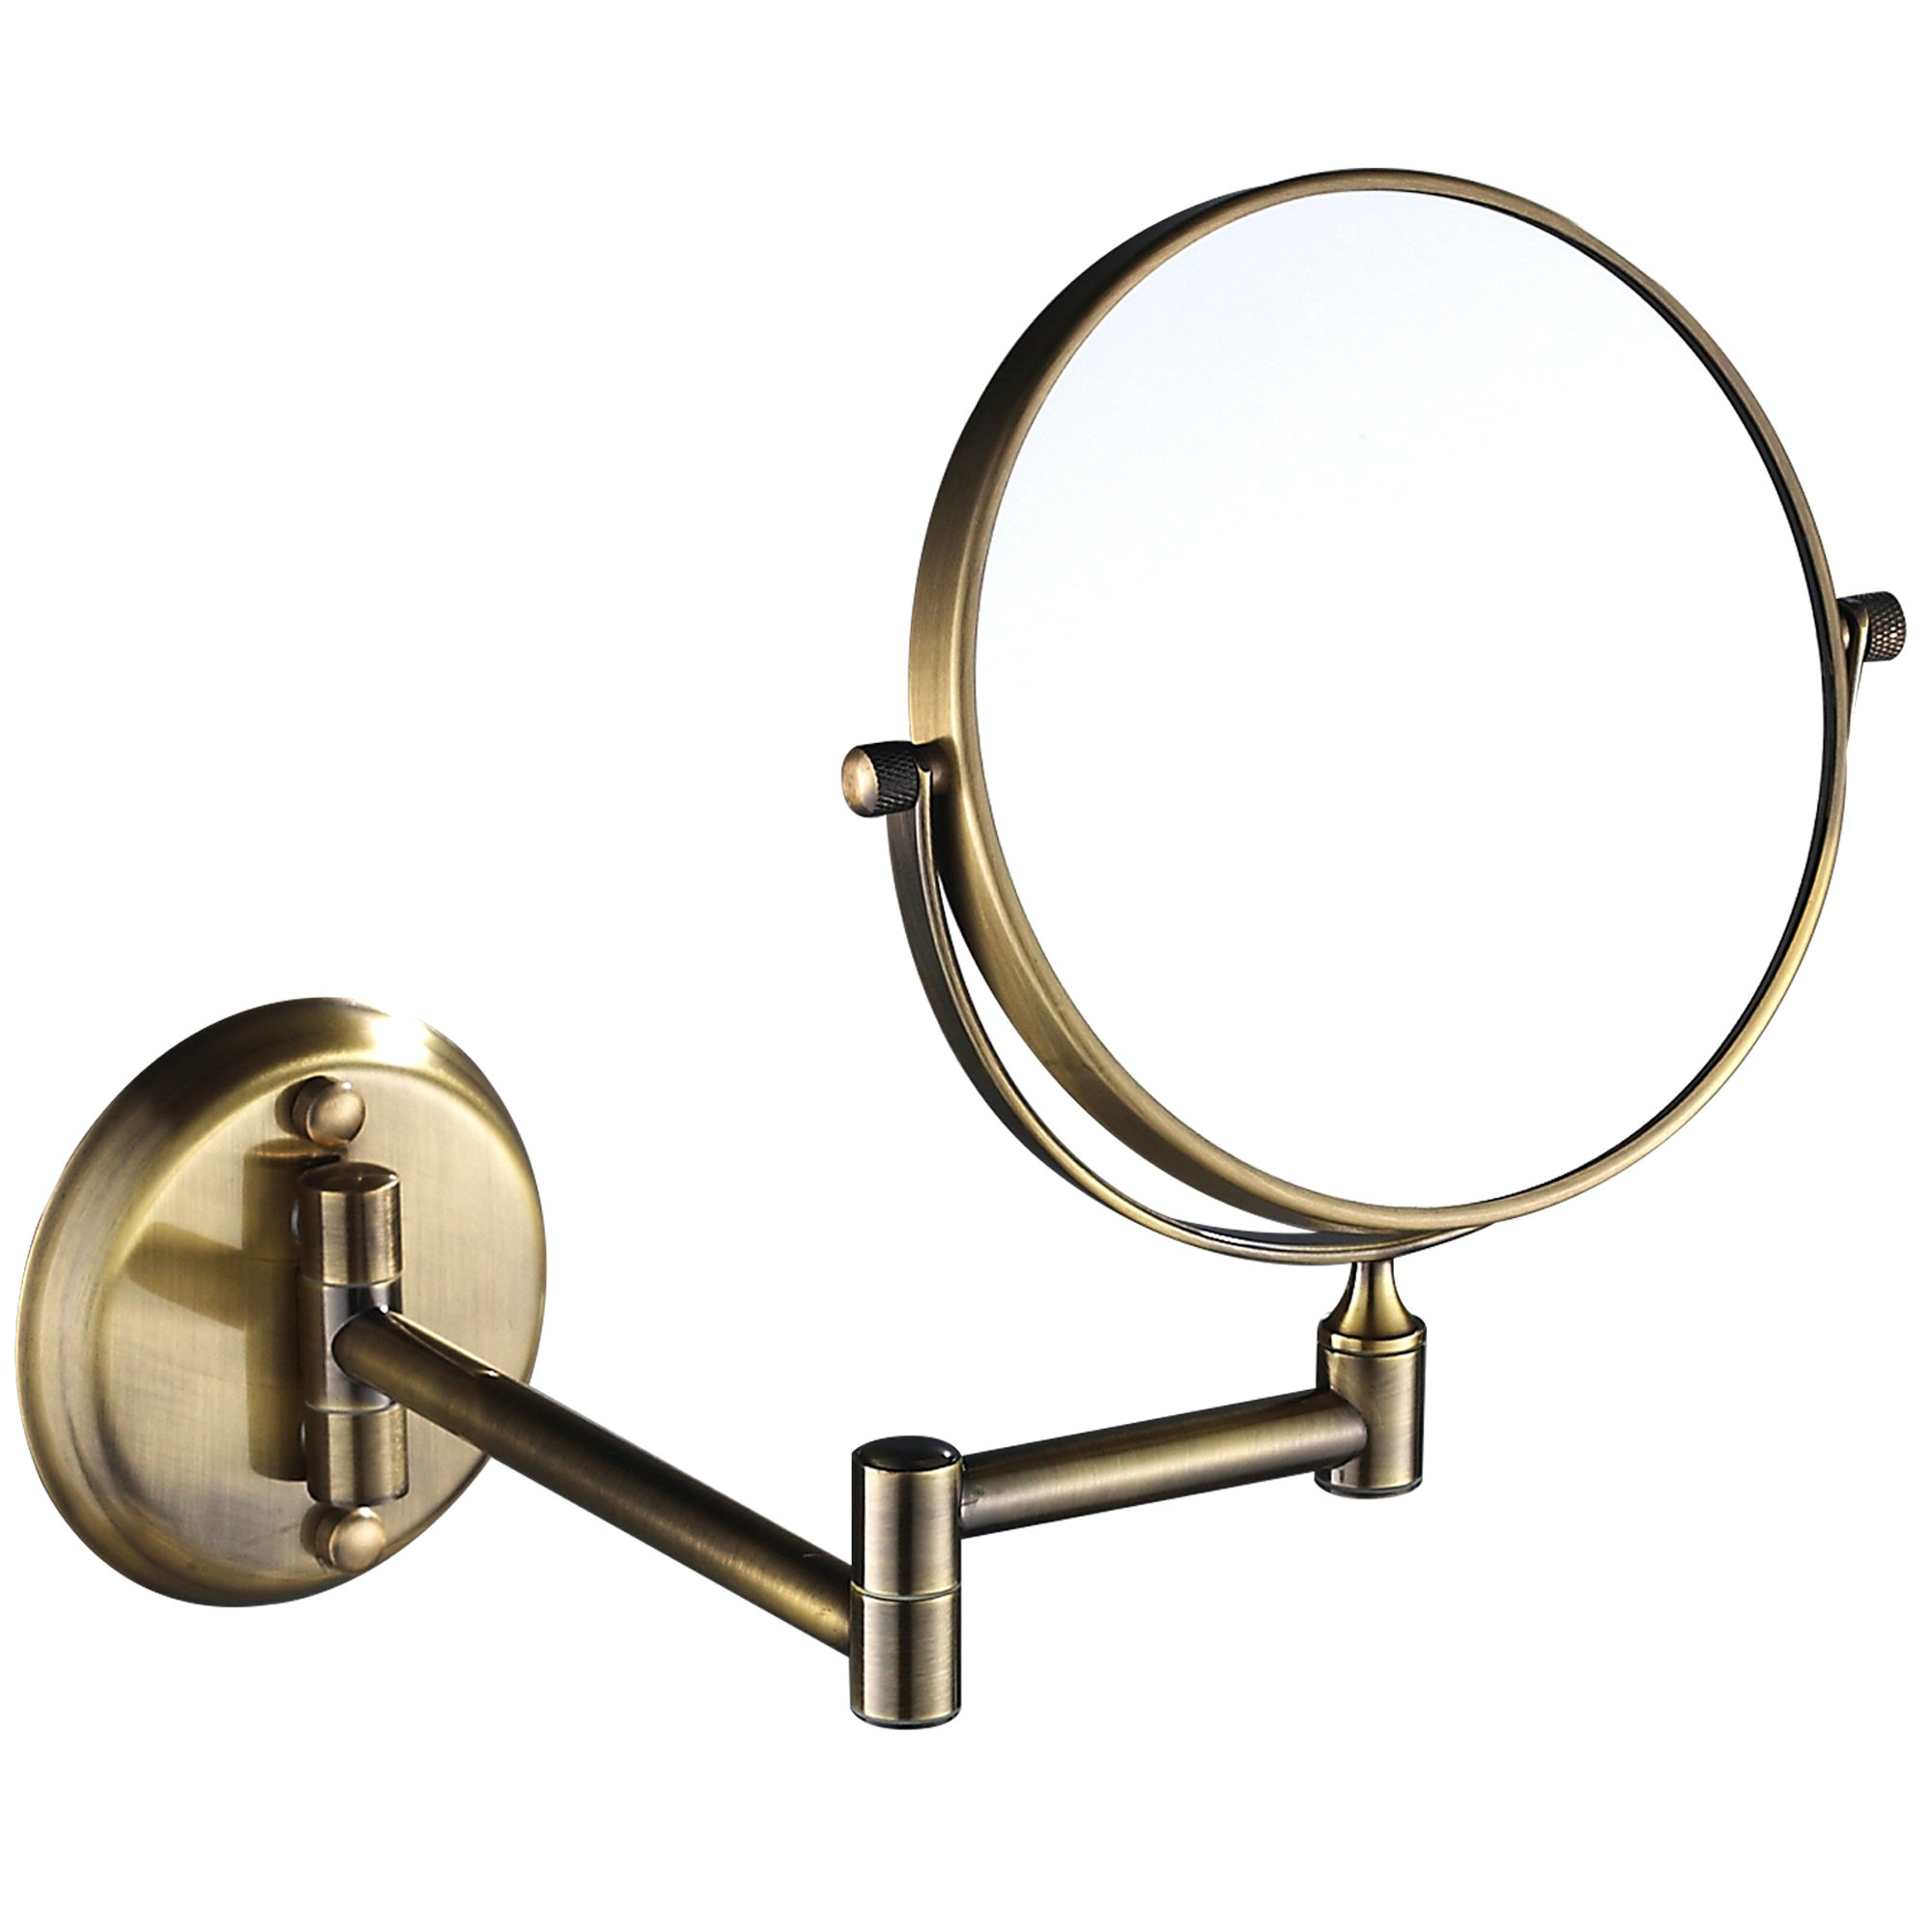 GURUN 8 Inch 10x Magnification Adjustable Round Mirror Wall Mount Makeup Mirrors,Antique Brass Finished M1306K(8in,10x)